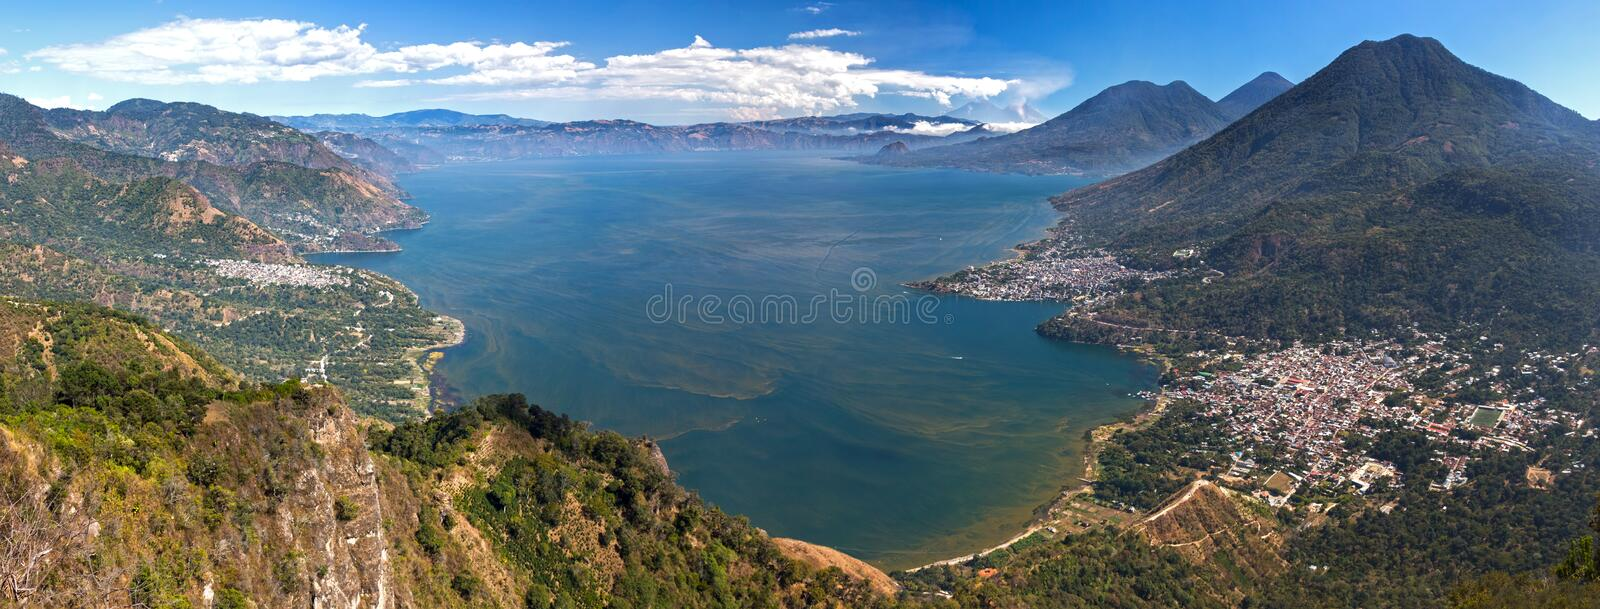 Aerial Wide Panoramic Scenic View Blue Lake Atitlan Guatemala Volcano Landscape royalty free stock photography